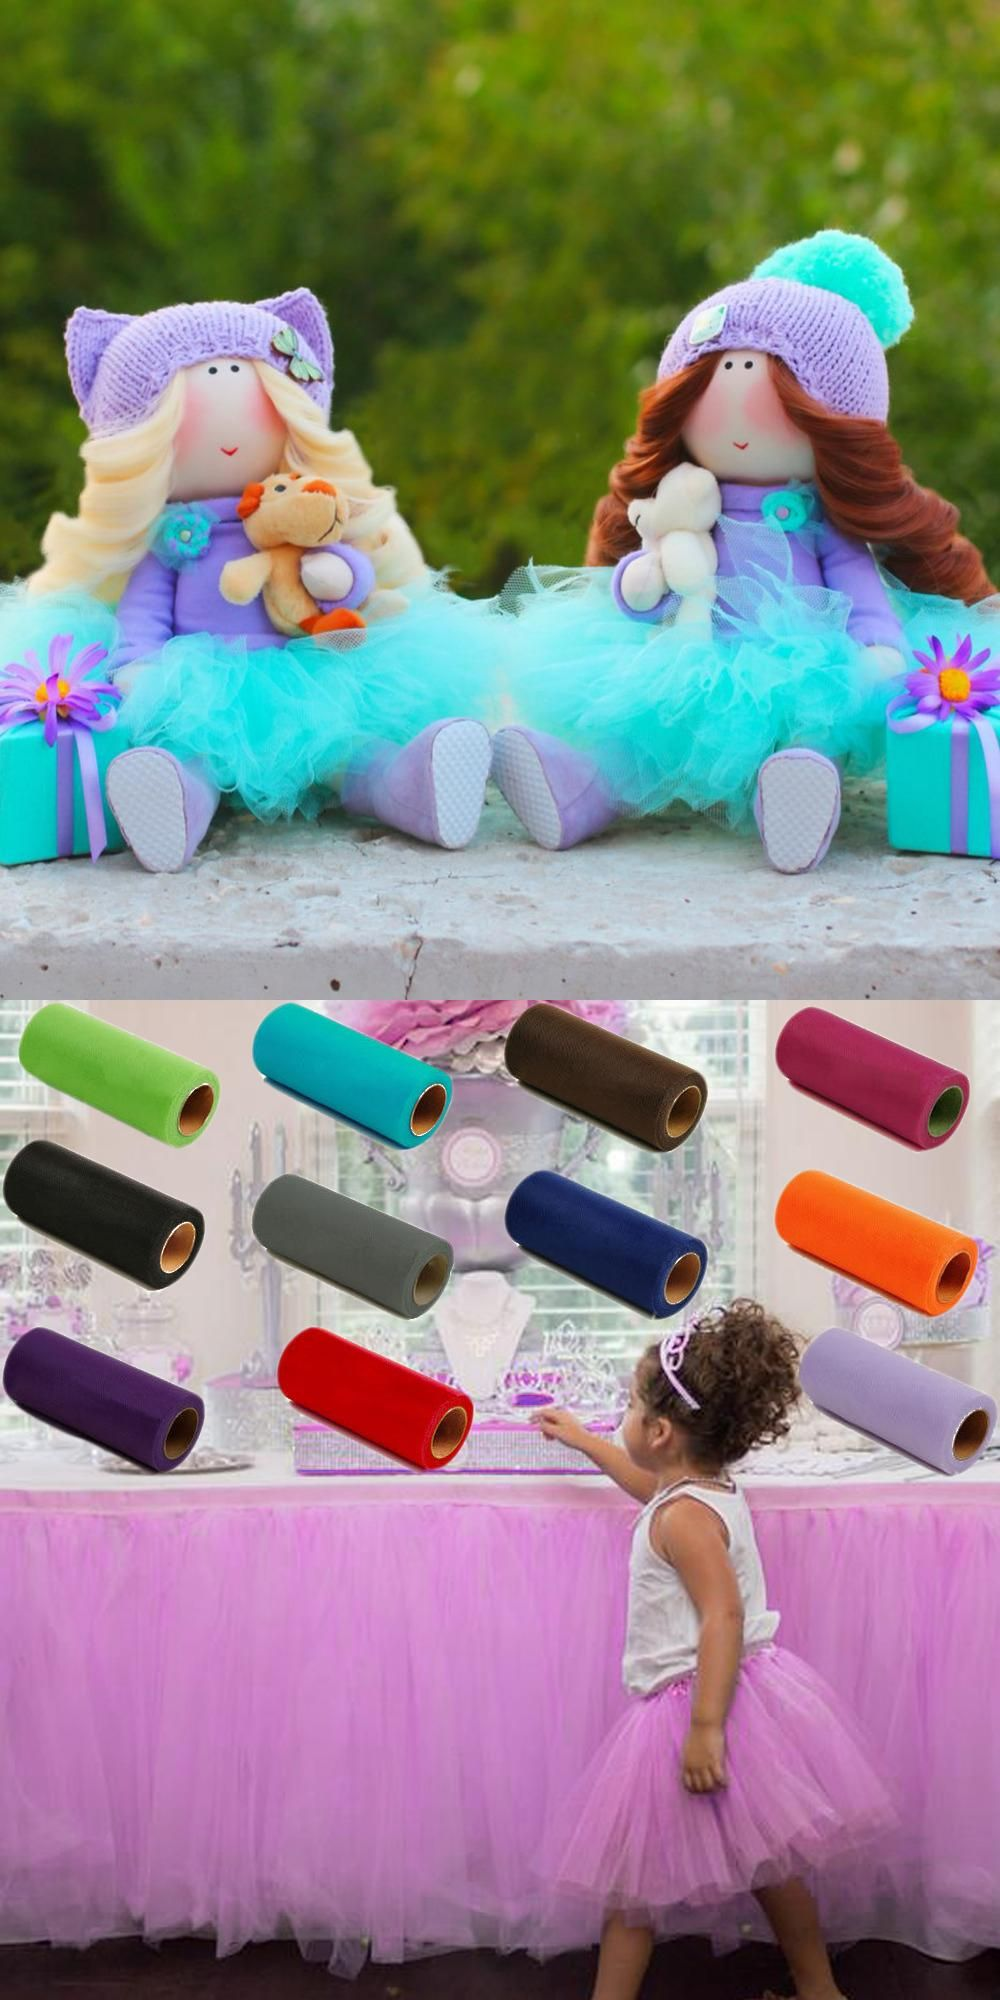 Wedding decorations using tulle  Visit to Buy Pick Color Matt TULLE Roll Spool inch x yard inch